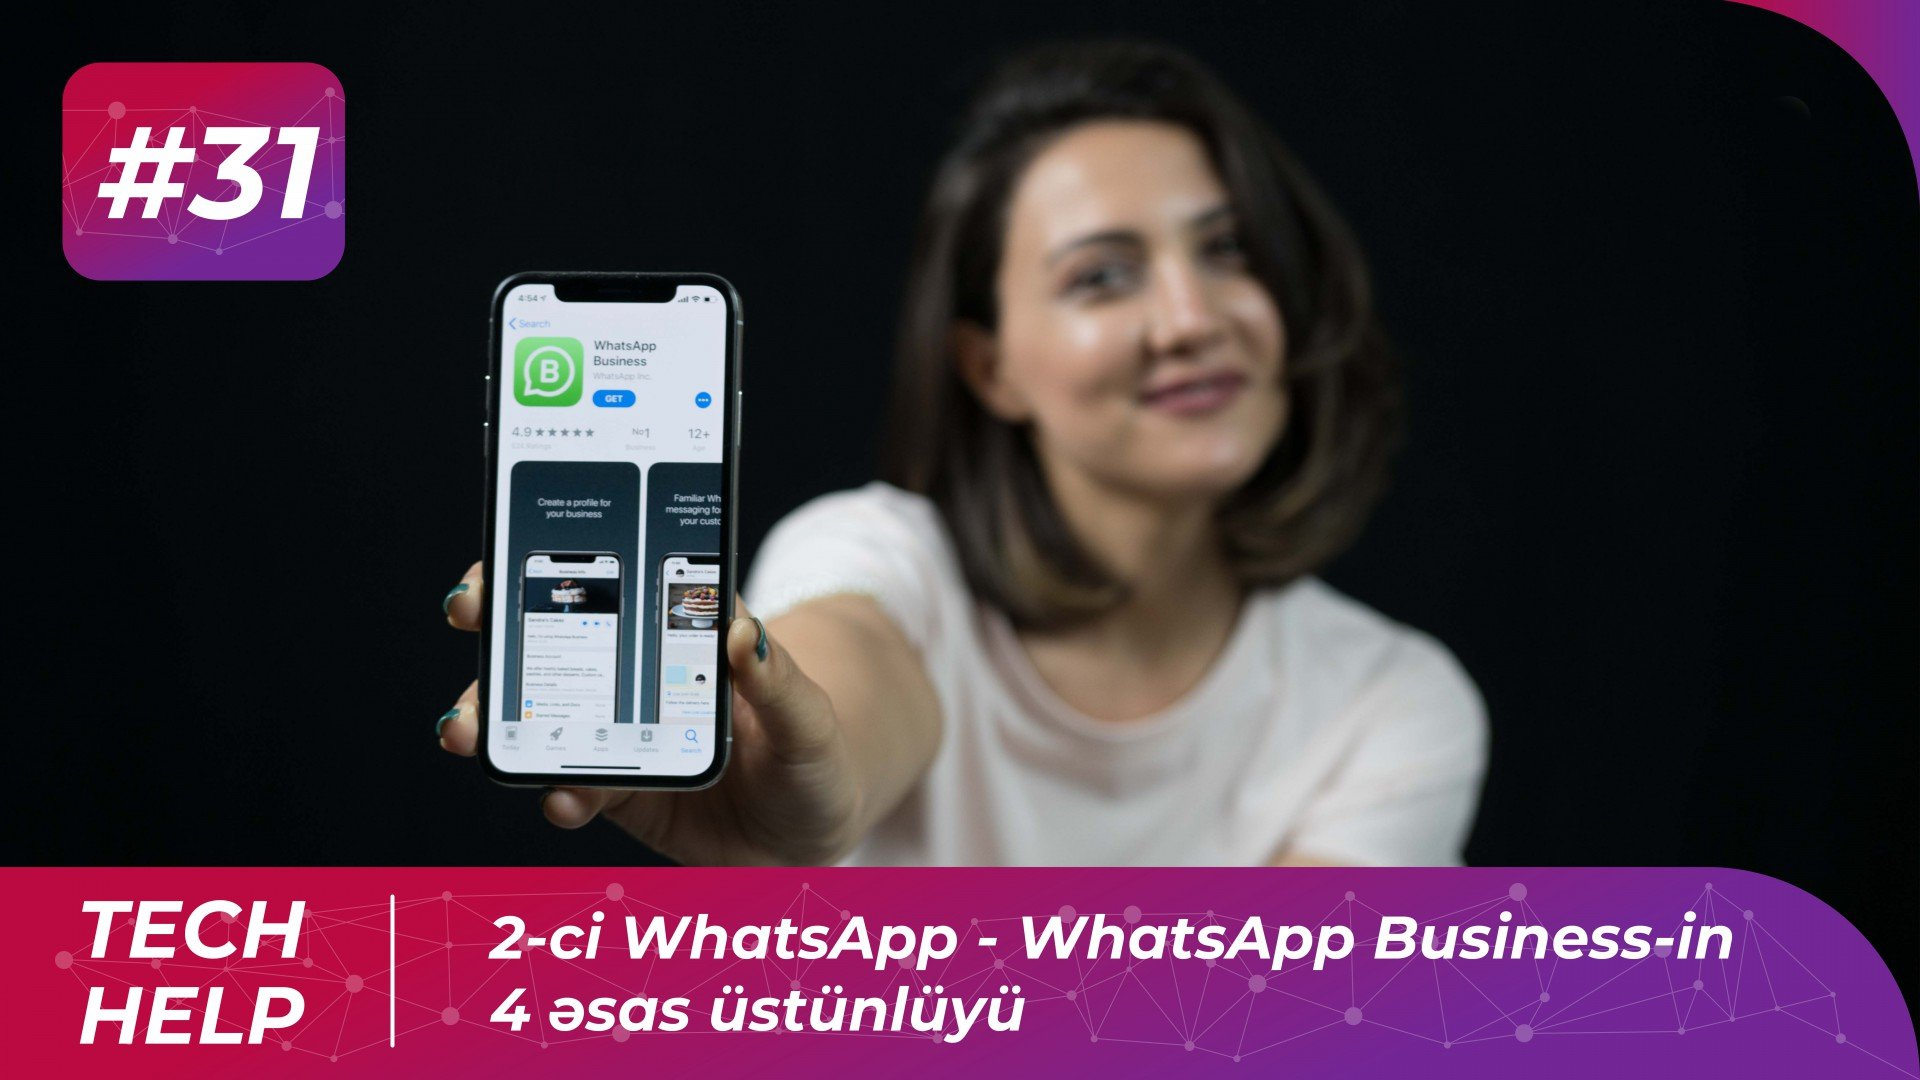 2-ci WhatsApp - WhatsApp Business-in 4 əsas üstünlüyü | Tech-Help #31